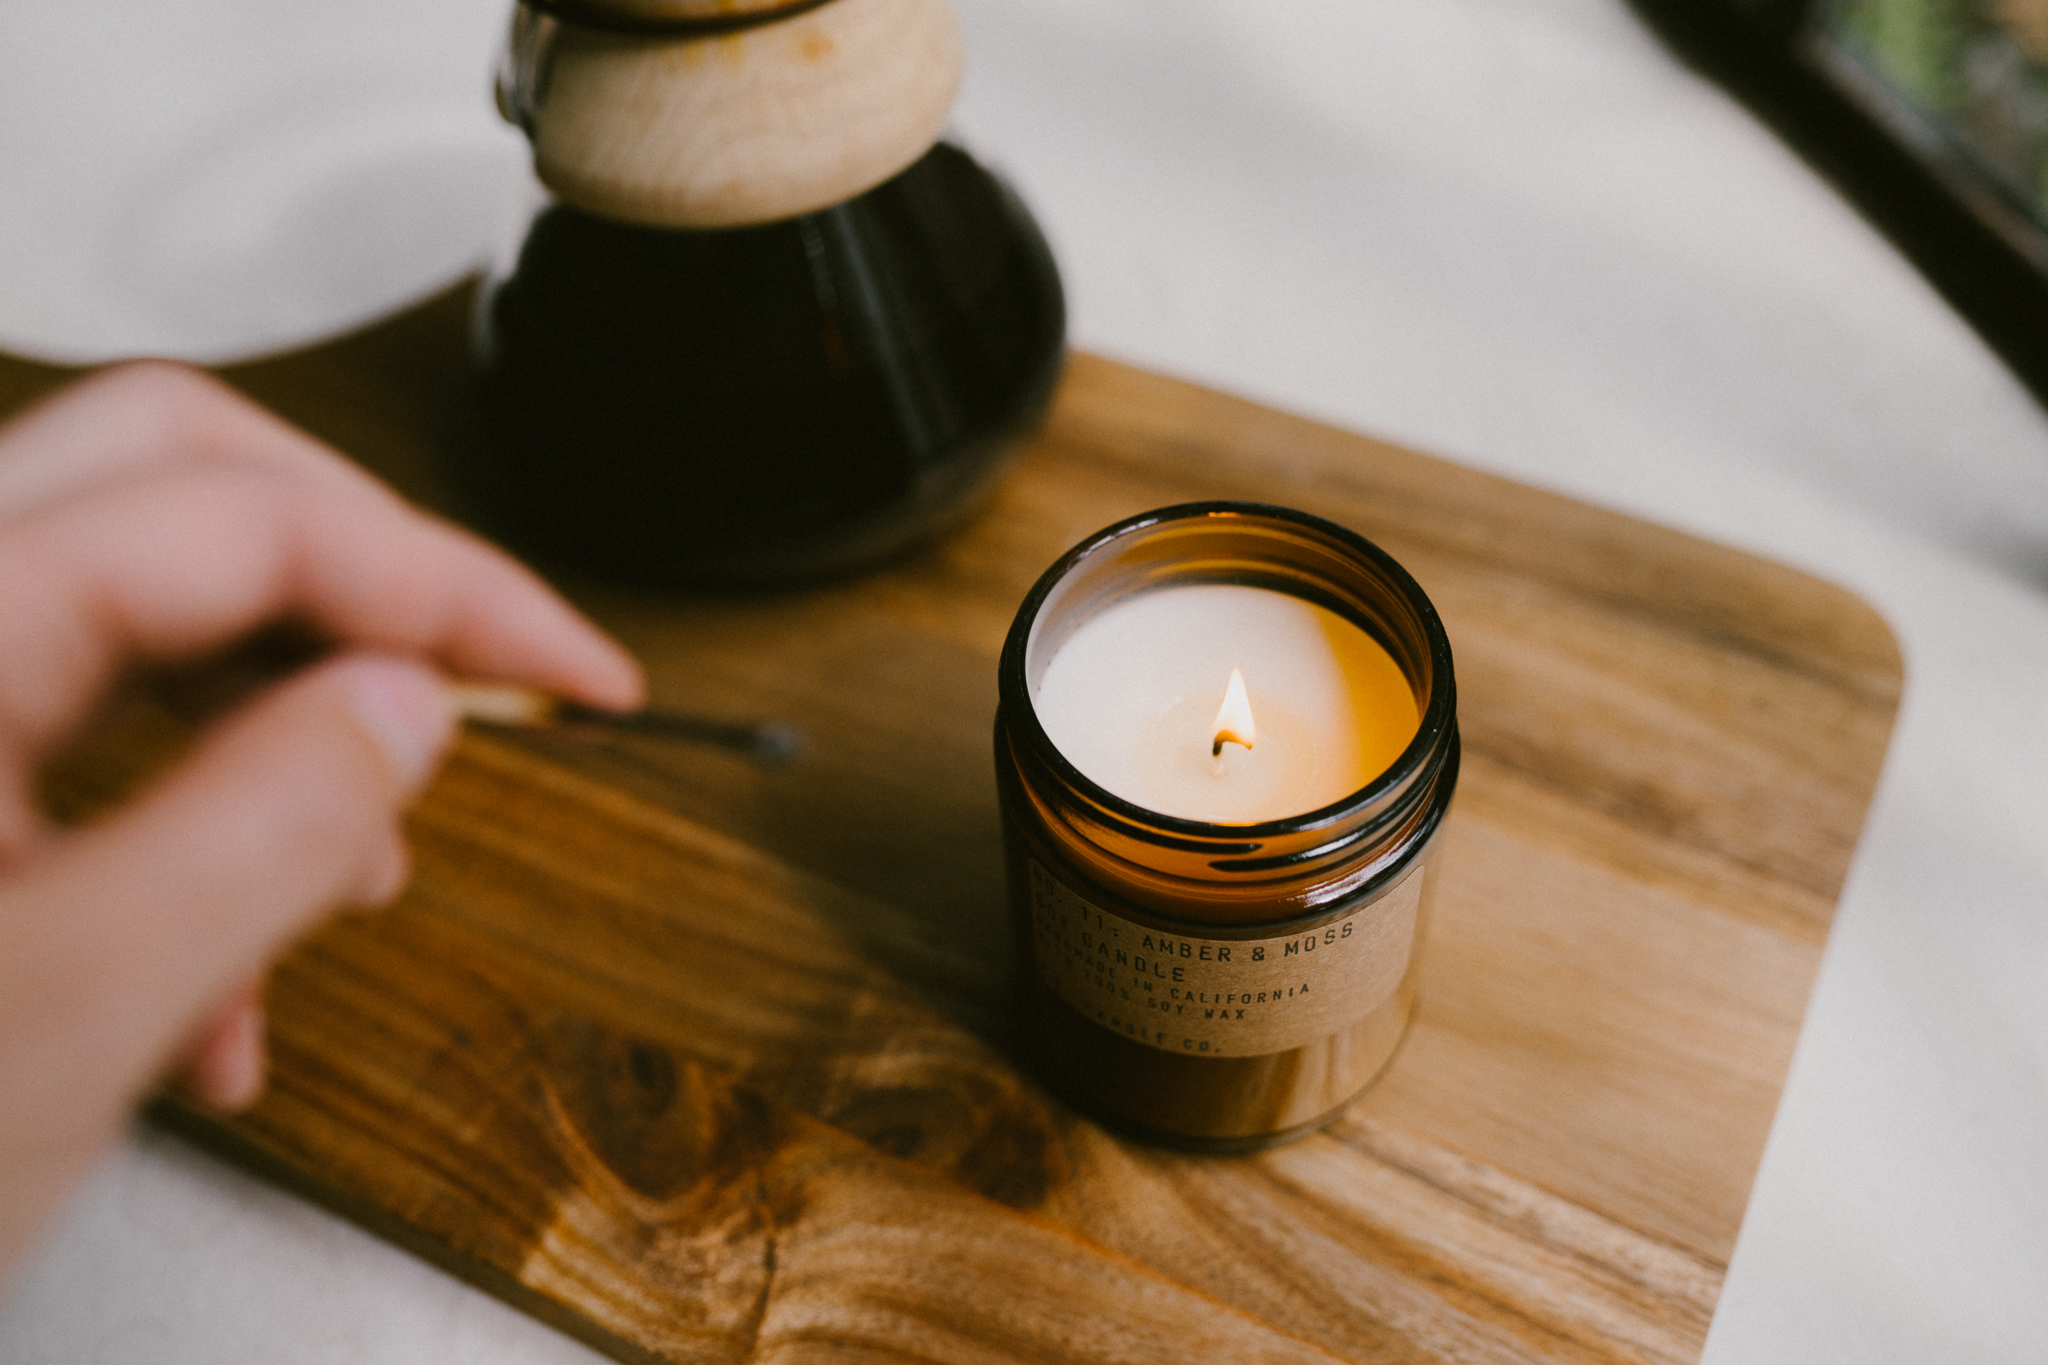 PF Candle Co  | Fall 2016 Lookbook  My task was to style and photograph two of their most popular scents for the Fall 2016 Lookbook project. The photos were meant to invoke warmth and comfort in a personalized space.